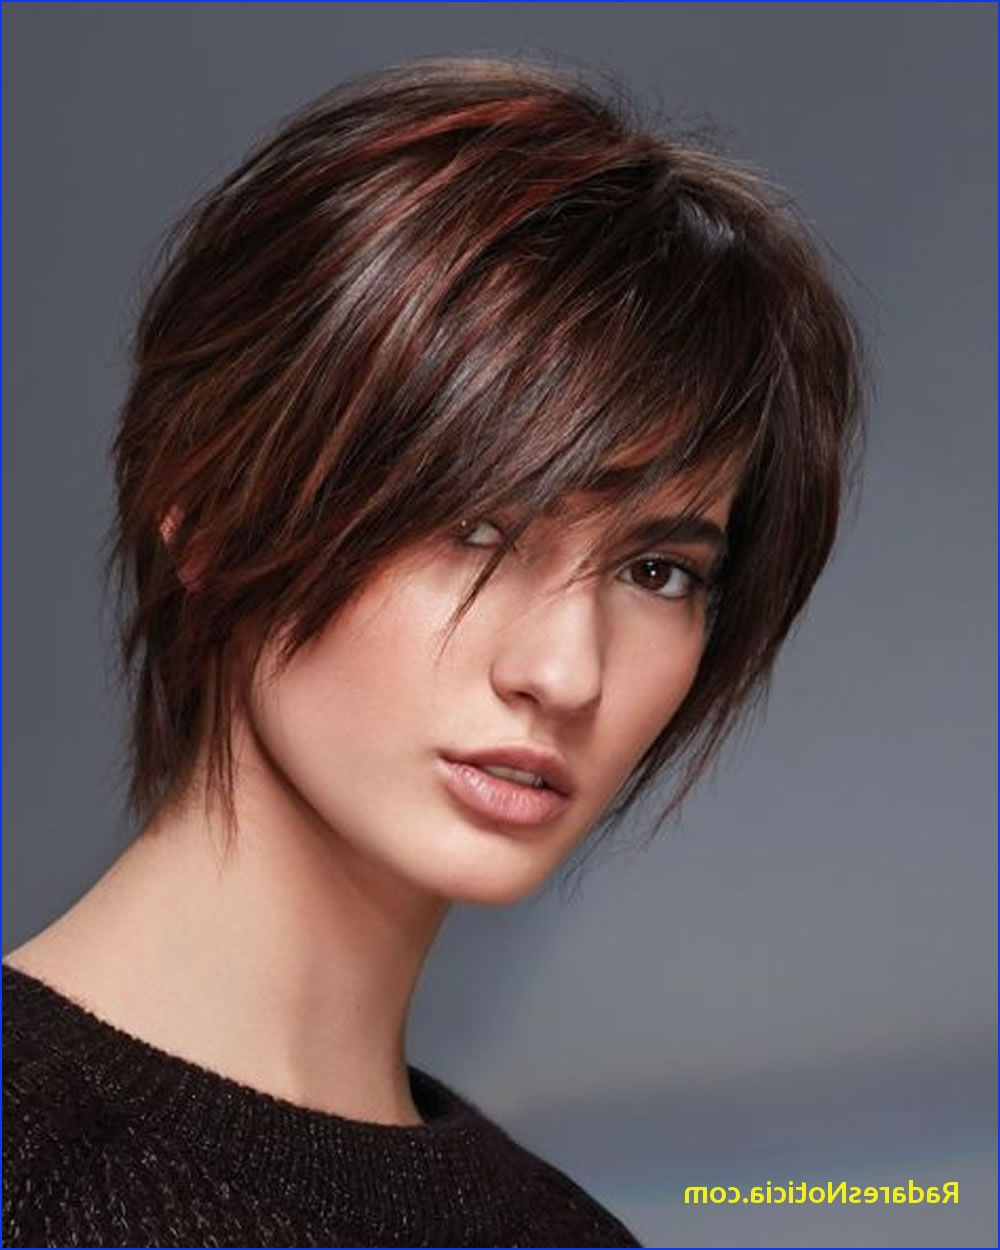 6 Best Short Hairstyles For Round Faces | Radaresnoticia Throughout Short Haircuts Bobs For Round Faces (Gallery 15 of 25)